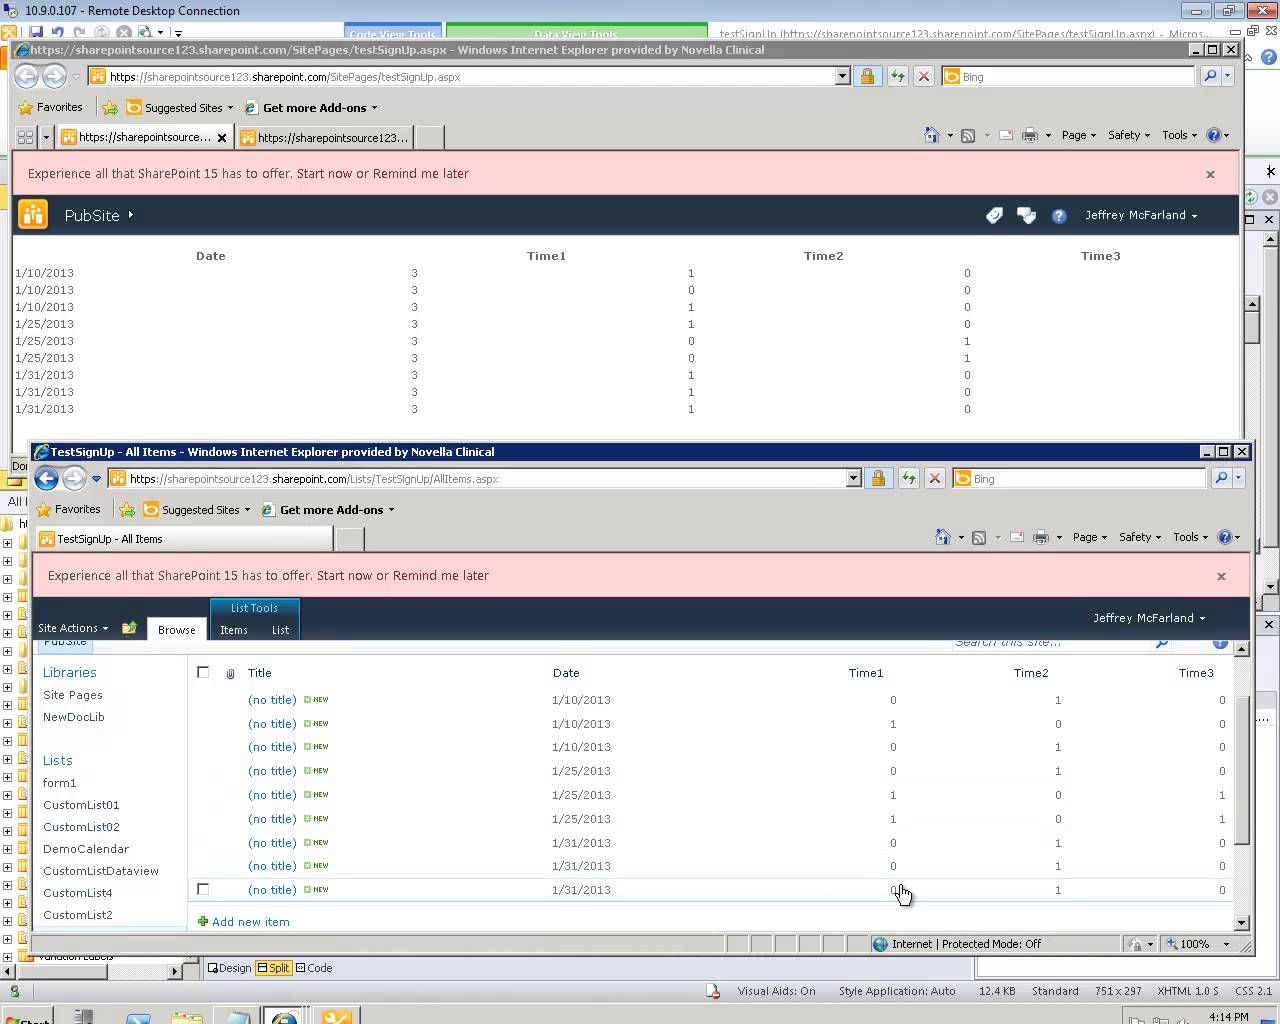 Getting the sum of all columns using XSLT in SharePoint